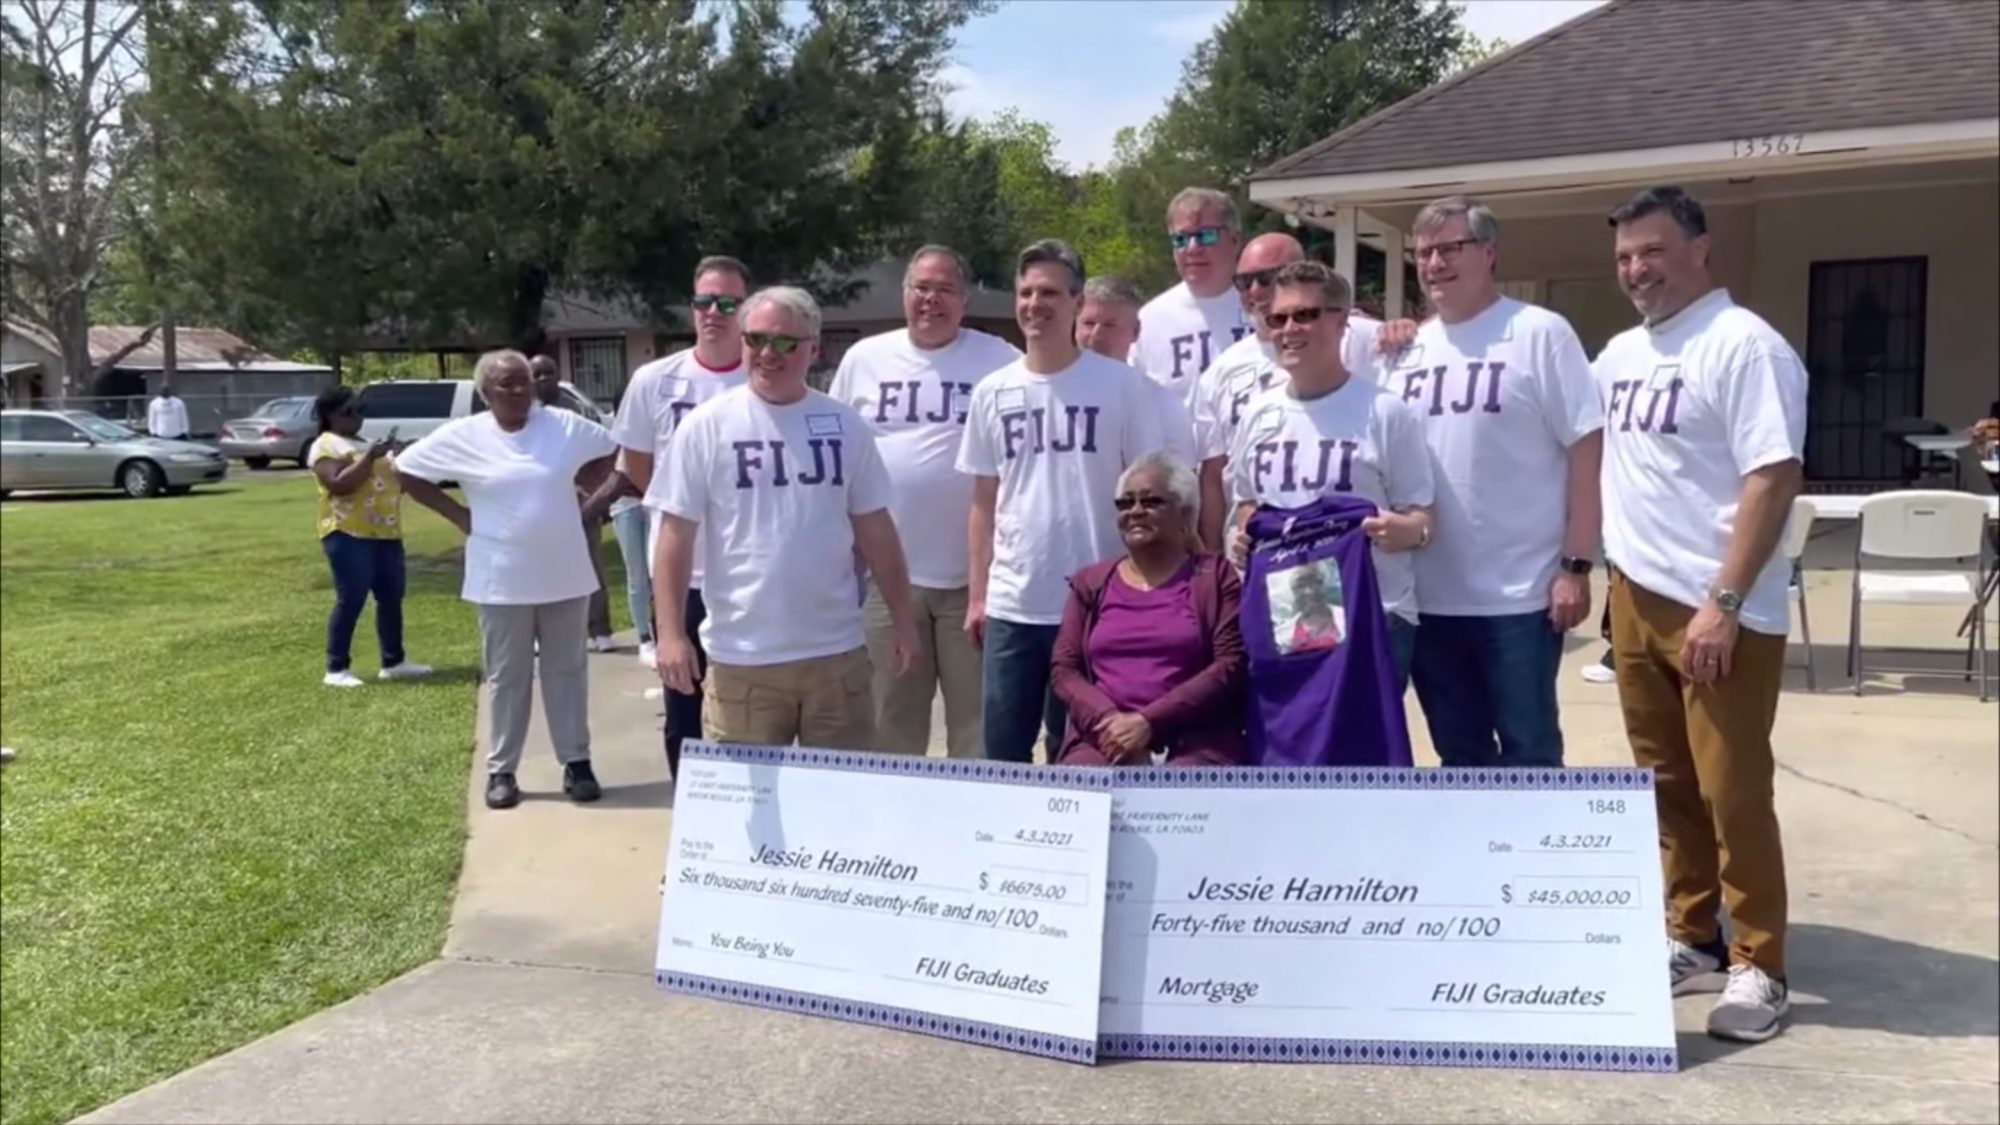 A group of LSU FIJI graduates gathered to surprise their house's former kitchen staff member, Jessie Hamilton, by paying off her mortgage Saturday afternoon, April 3, 2021.